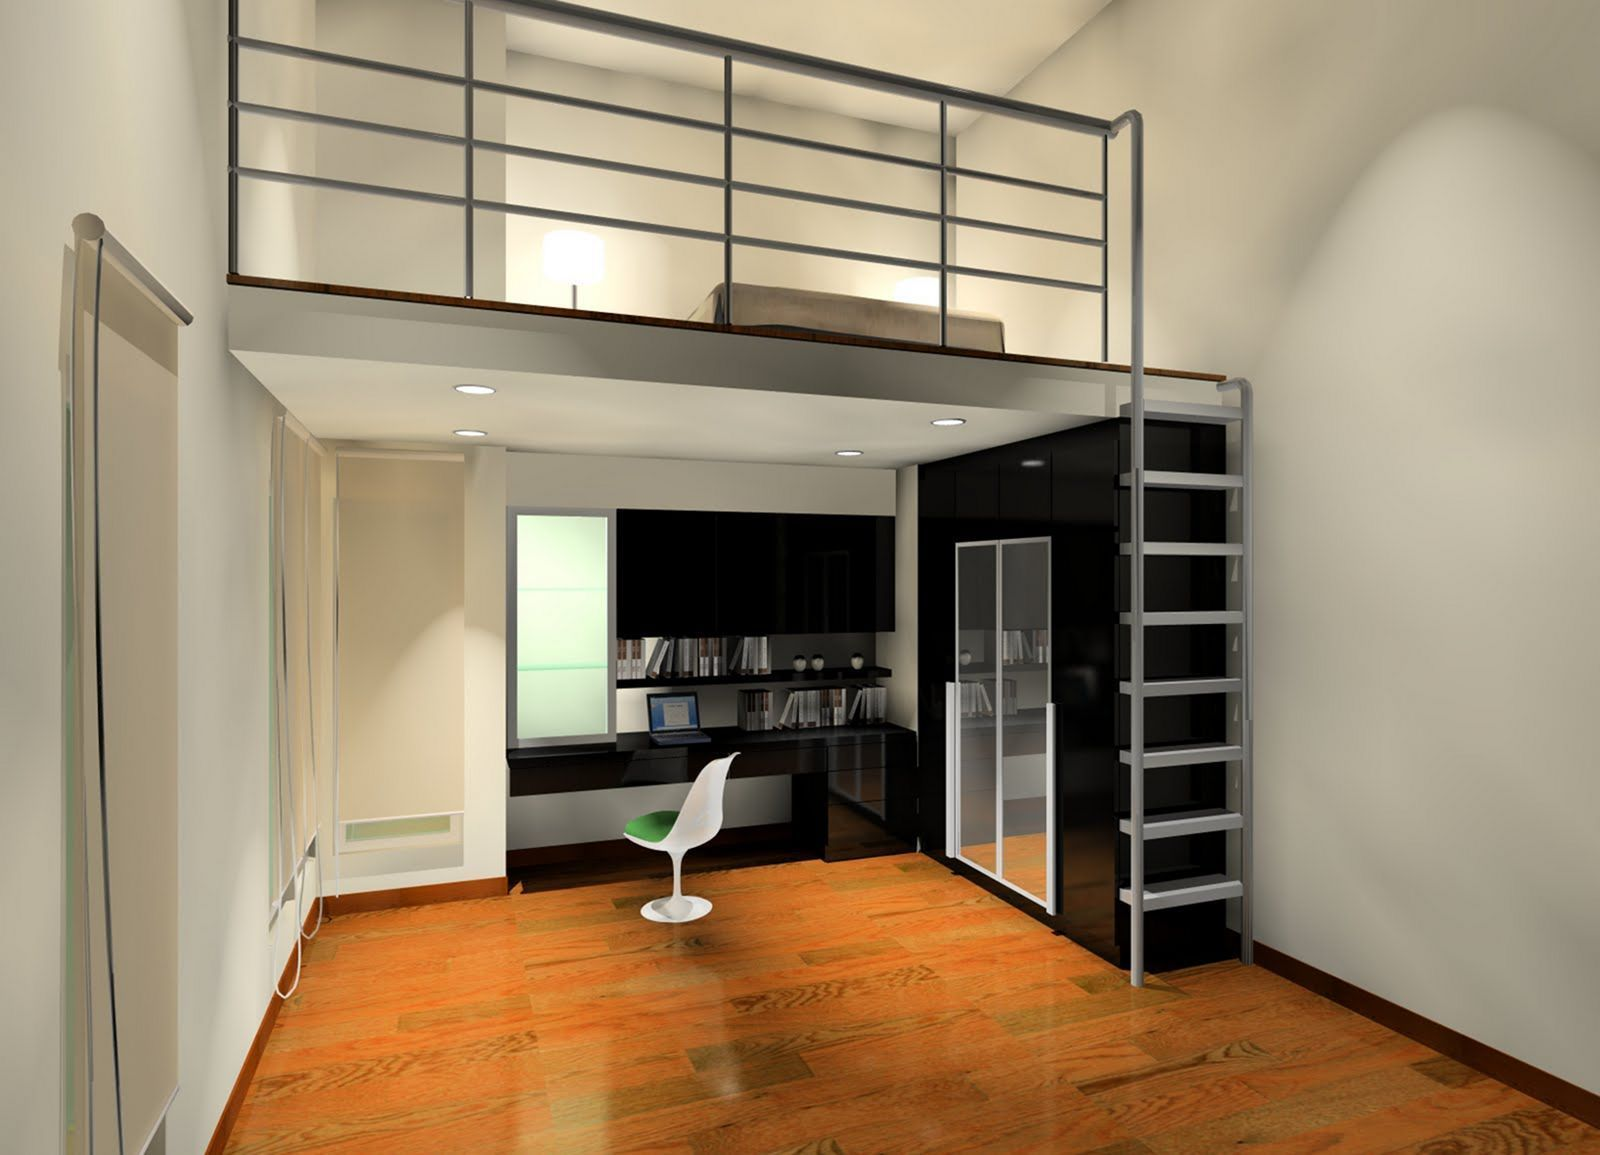 30 Beautiful Mezzanine Designs That Inspire To Expand Your